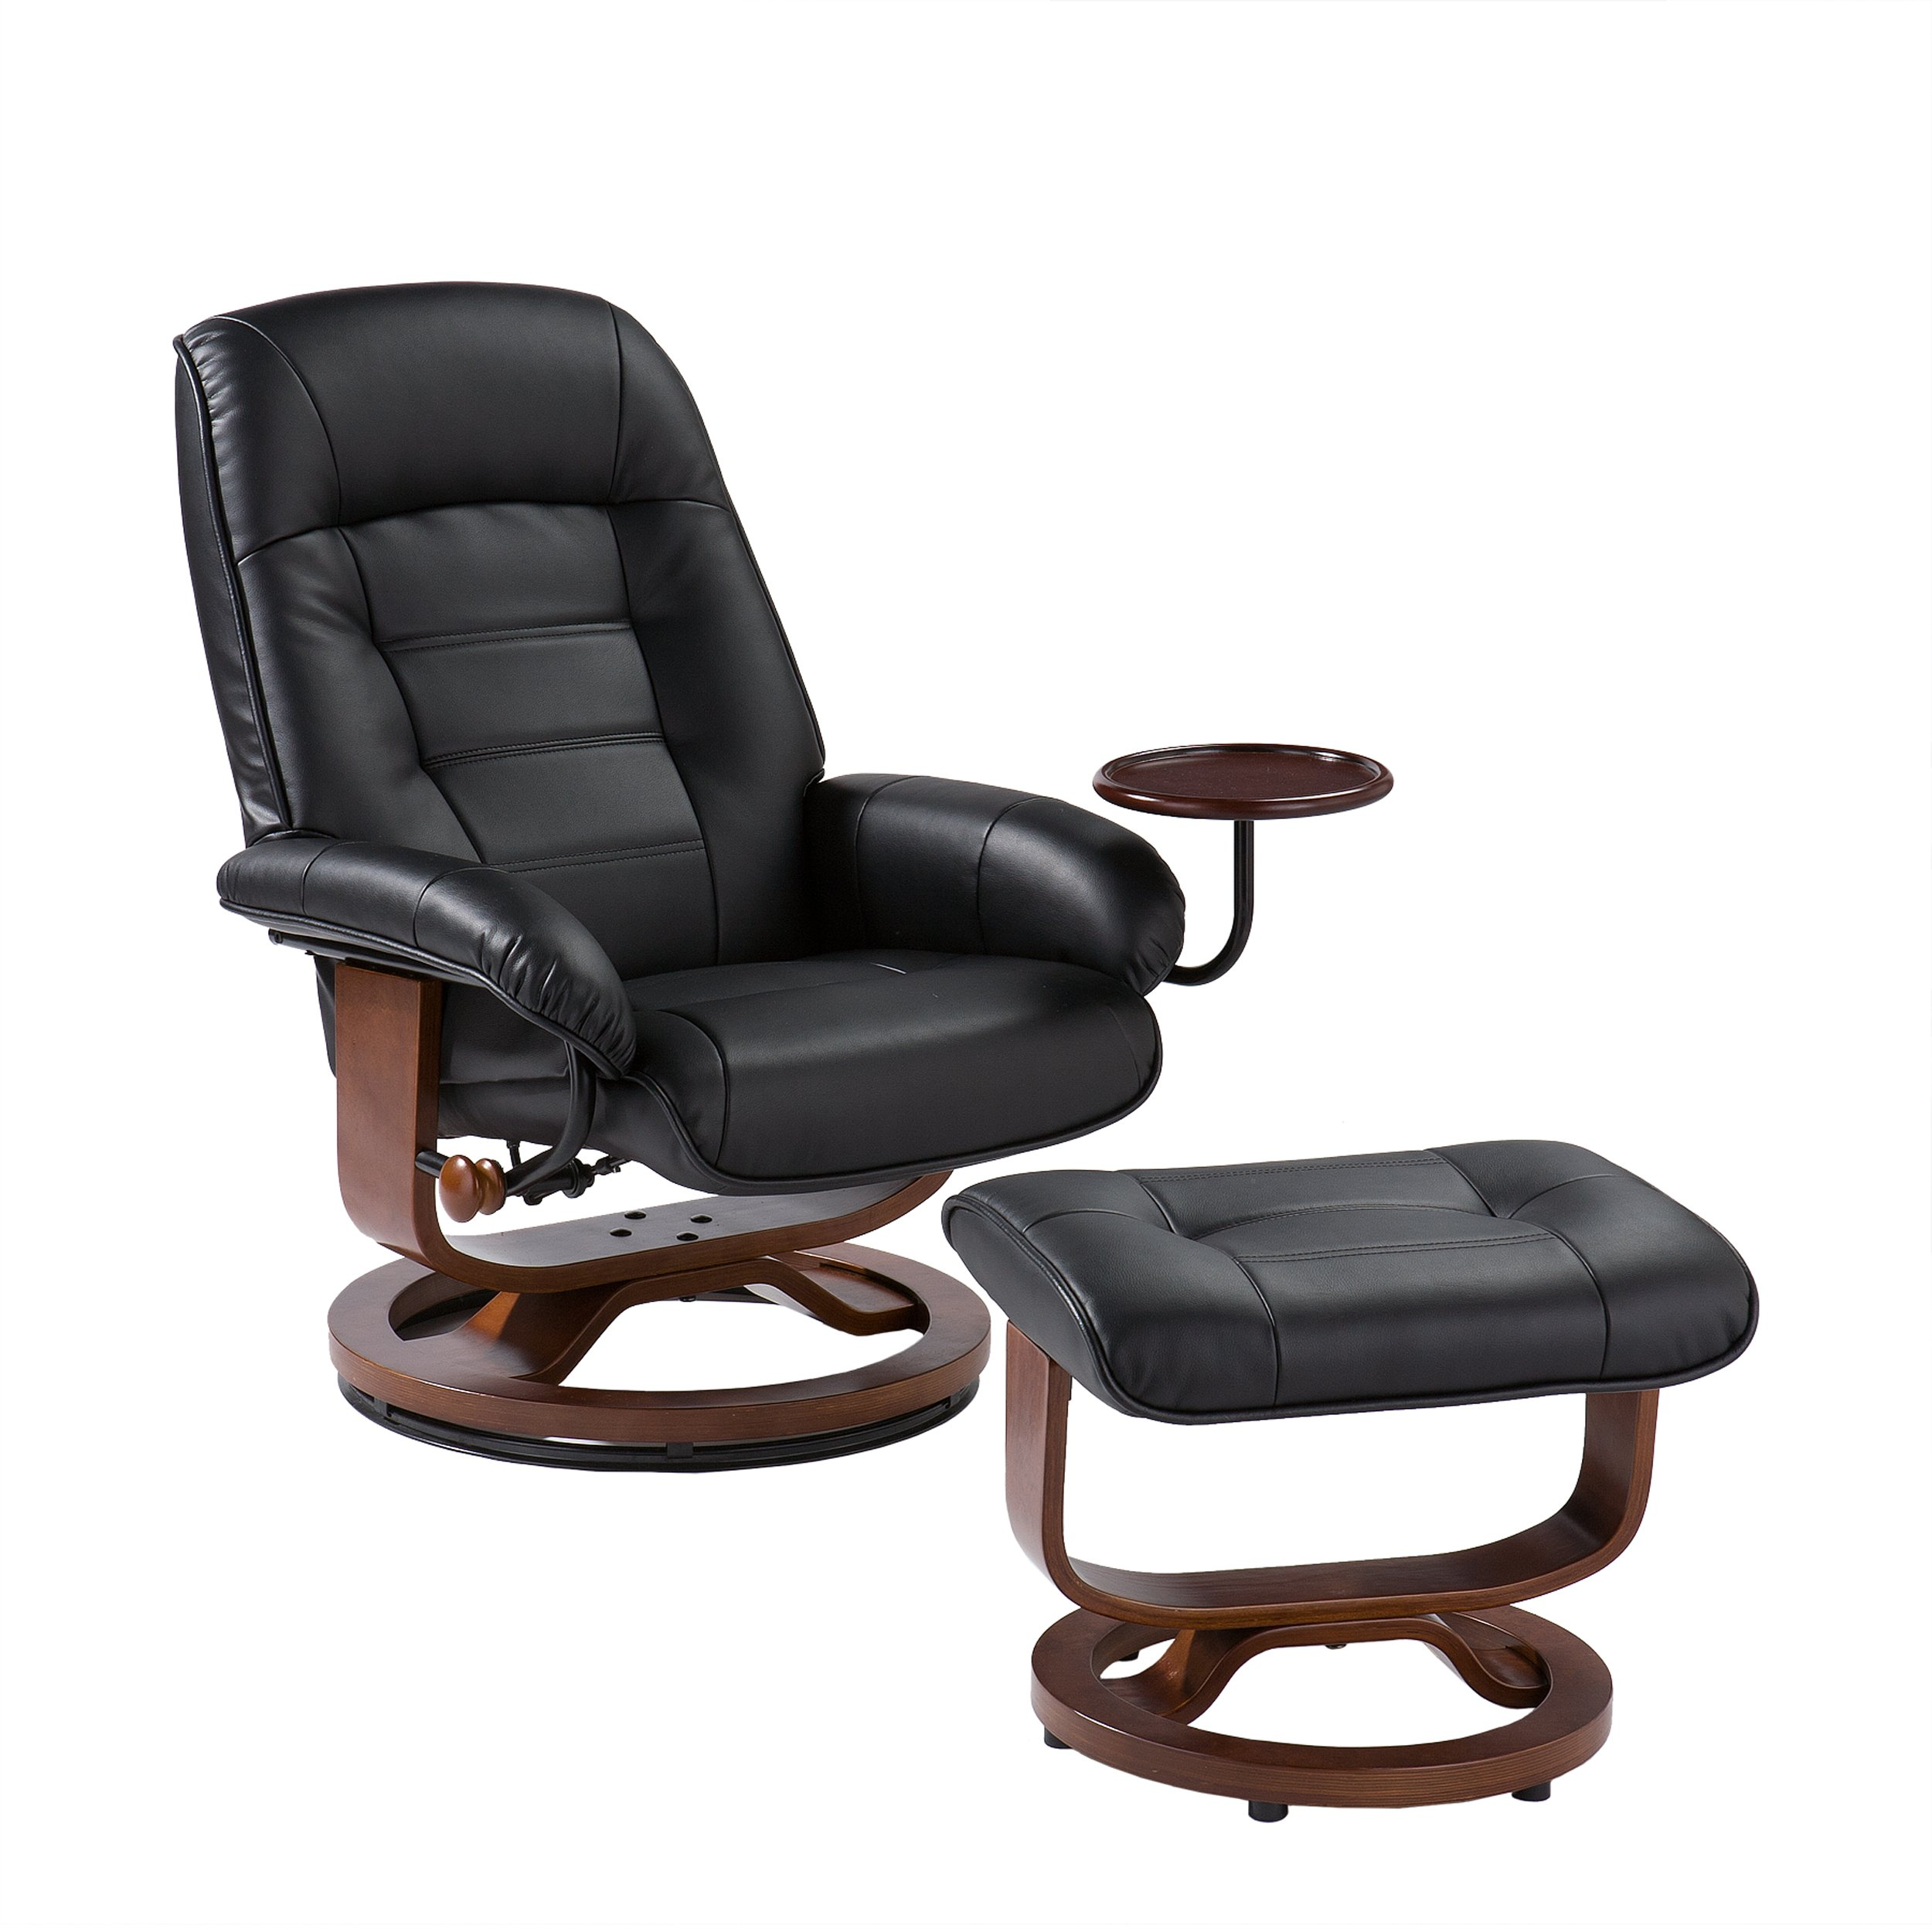 Southern Enterprises Bonded Leather Recliner and Ottoman - Black by Southern Enterprises